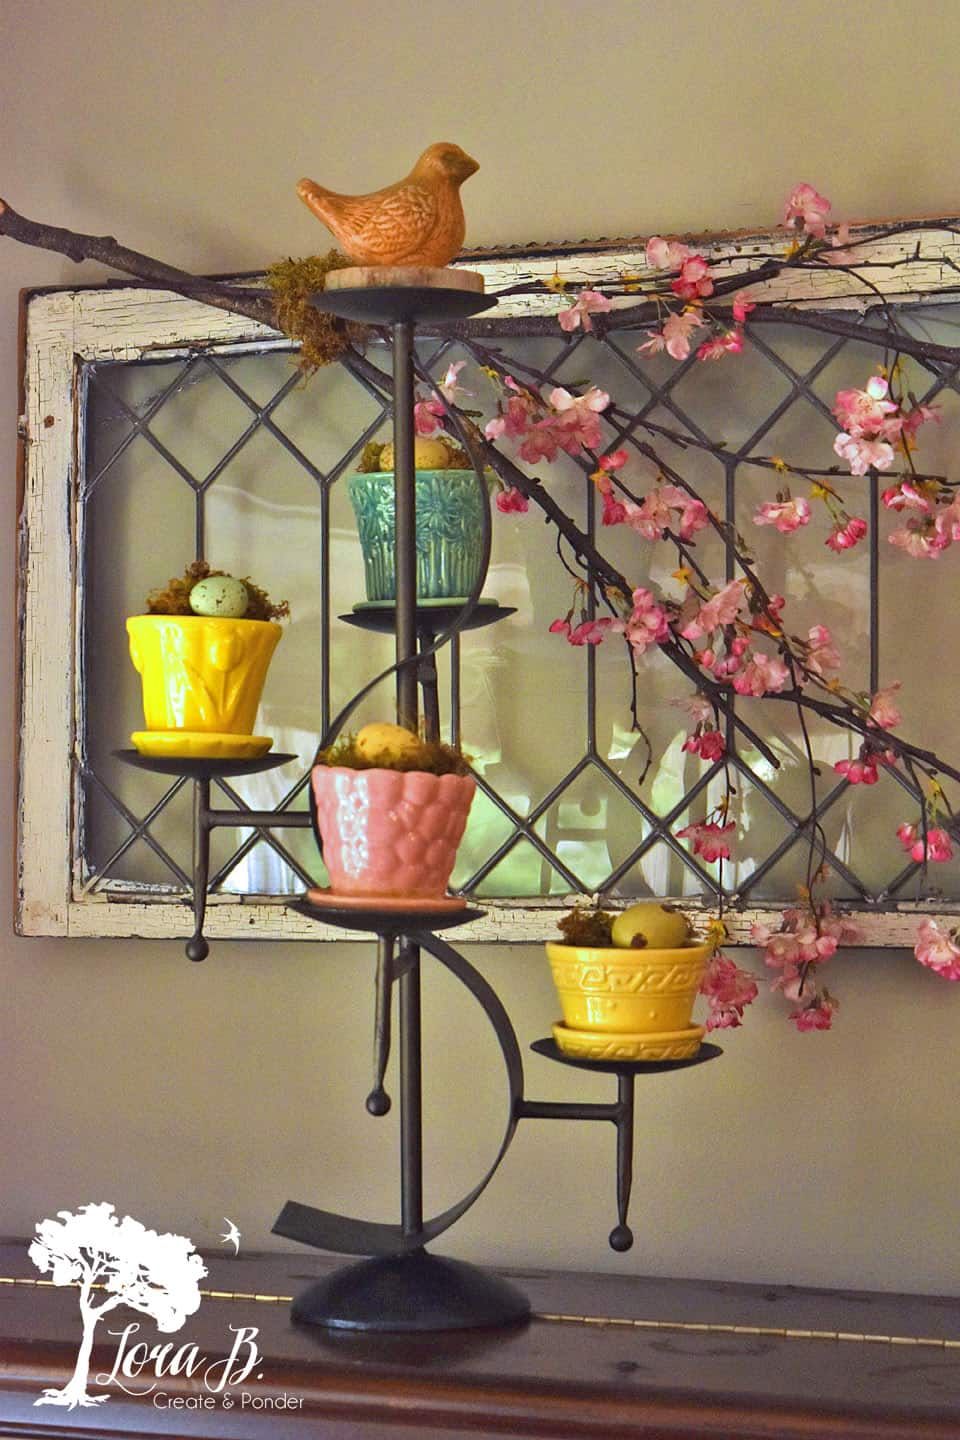 Vintage pottery planters displayed on a tiered candleholder